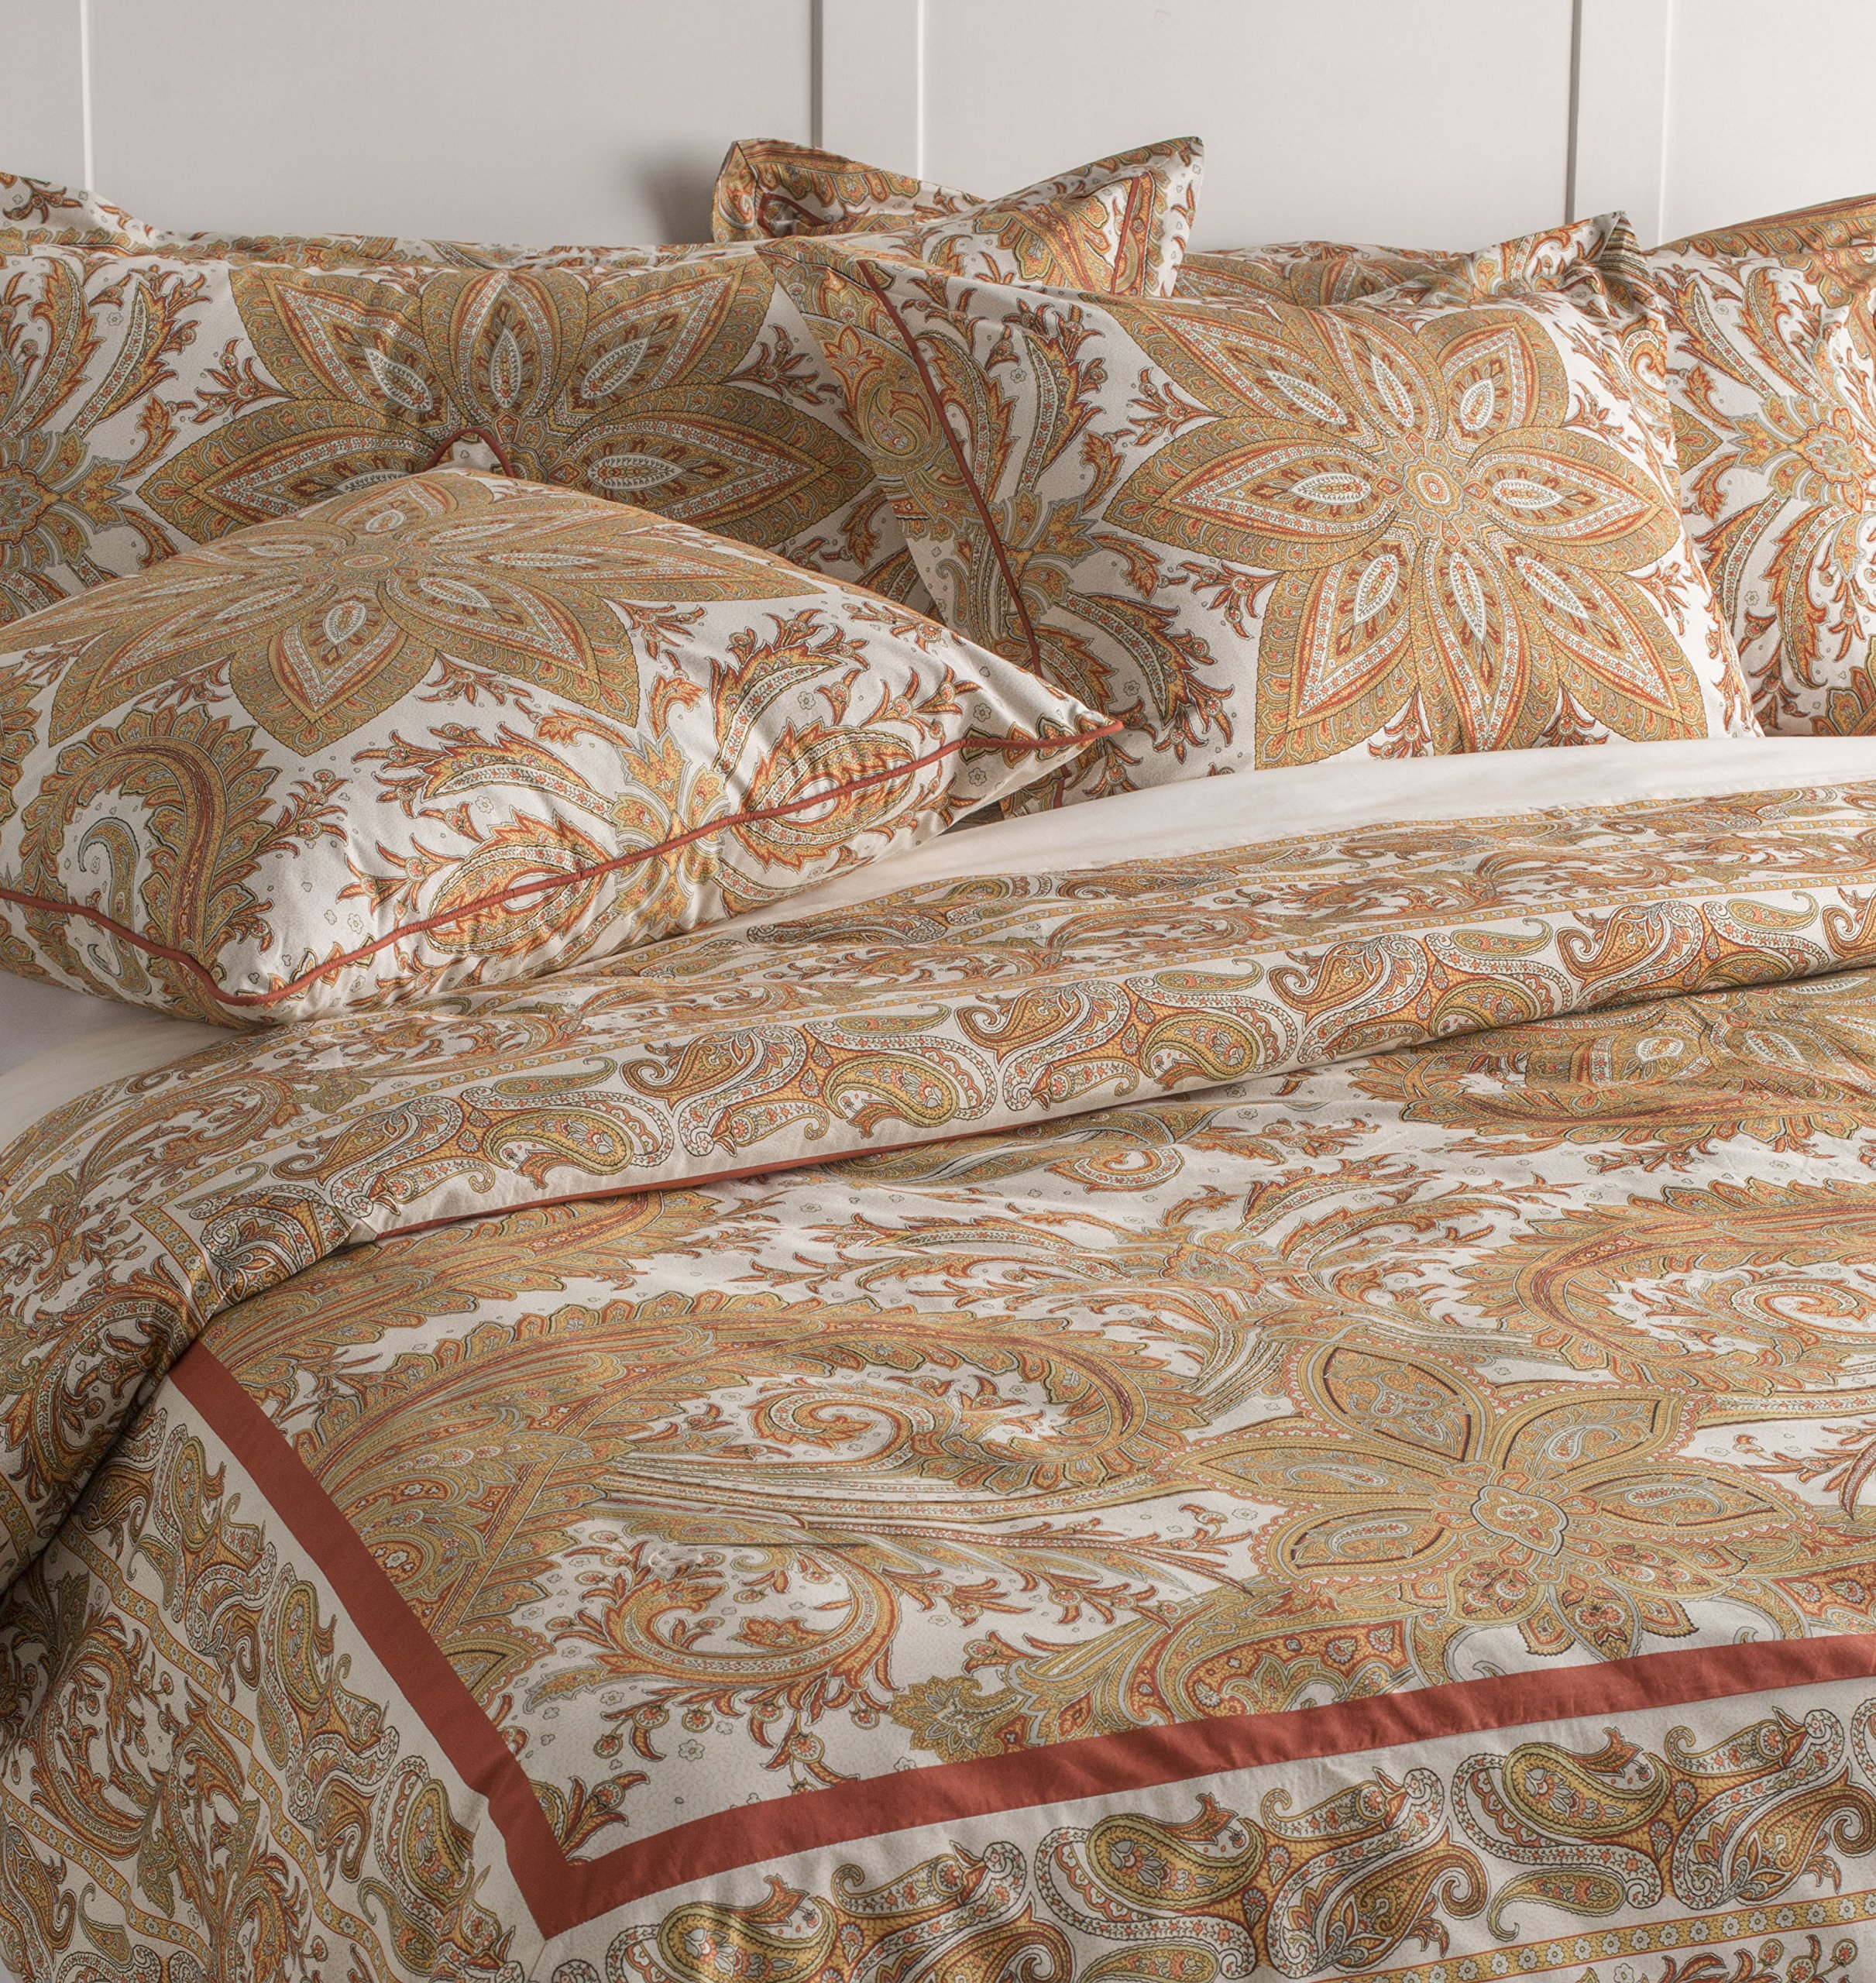 Maison d' Hermine Kashmir Paisley 100% Cotton King Duvet Cover Set 108 Inch by 92 Inch with 2 King Sham 36 Inch by 20 Inch. Perfect for Thanksgiving and Christmas